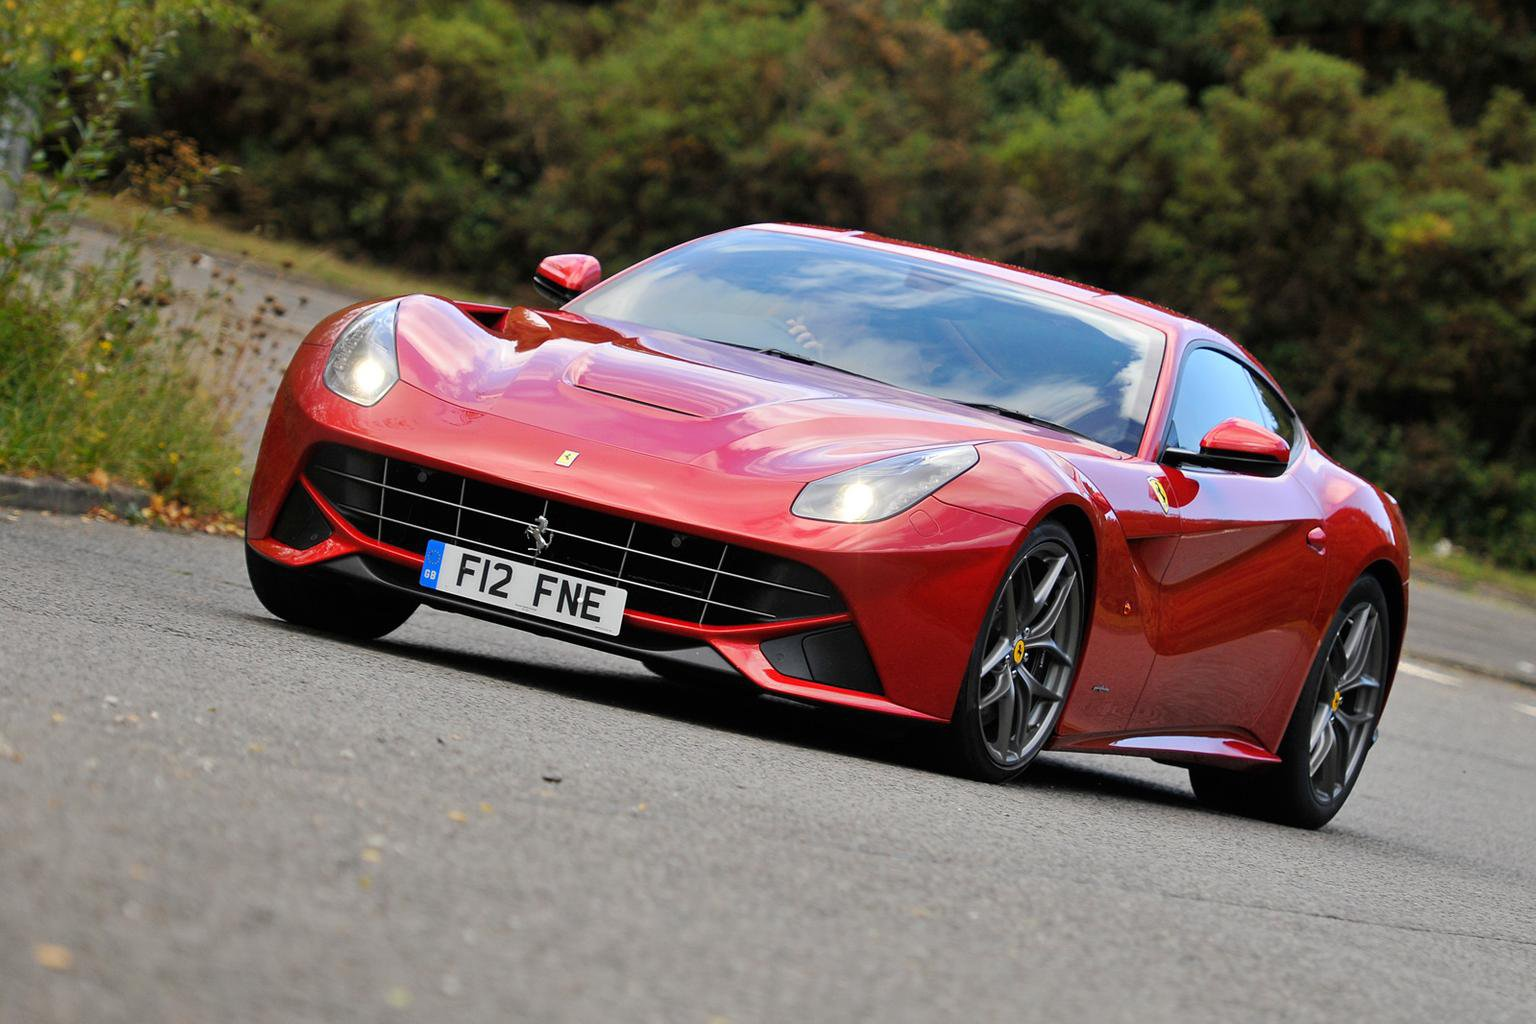 2013 Ferrari F12 review